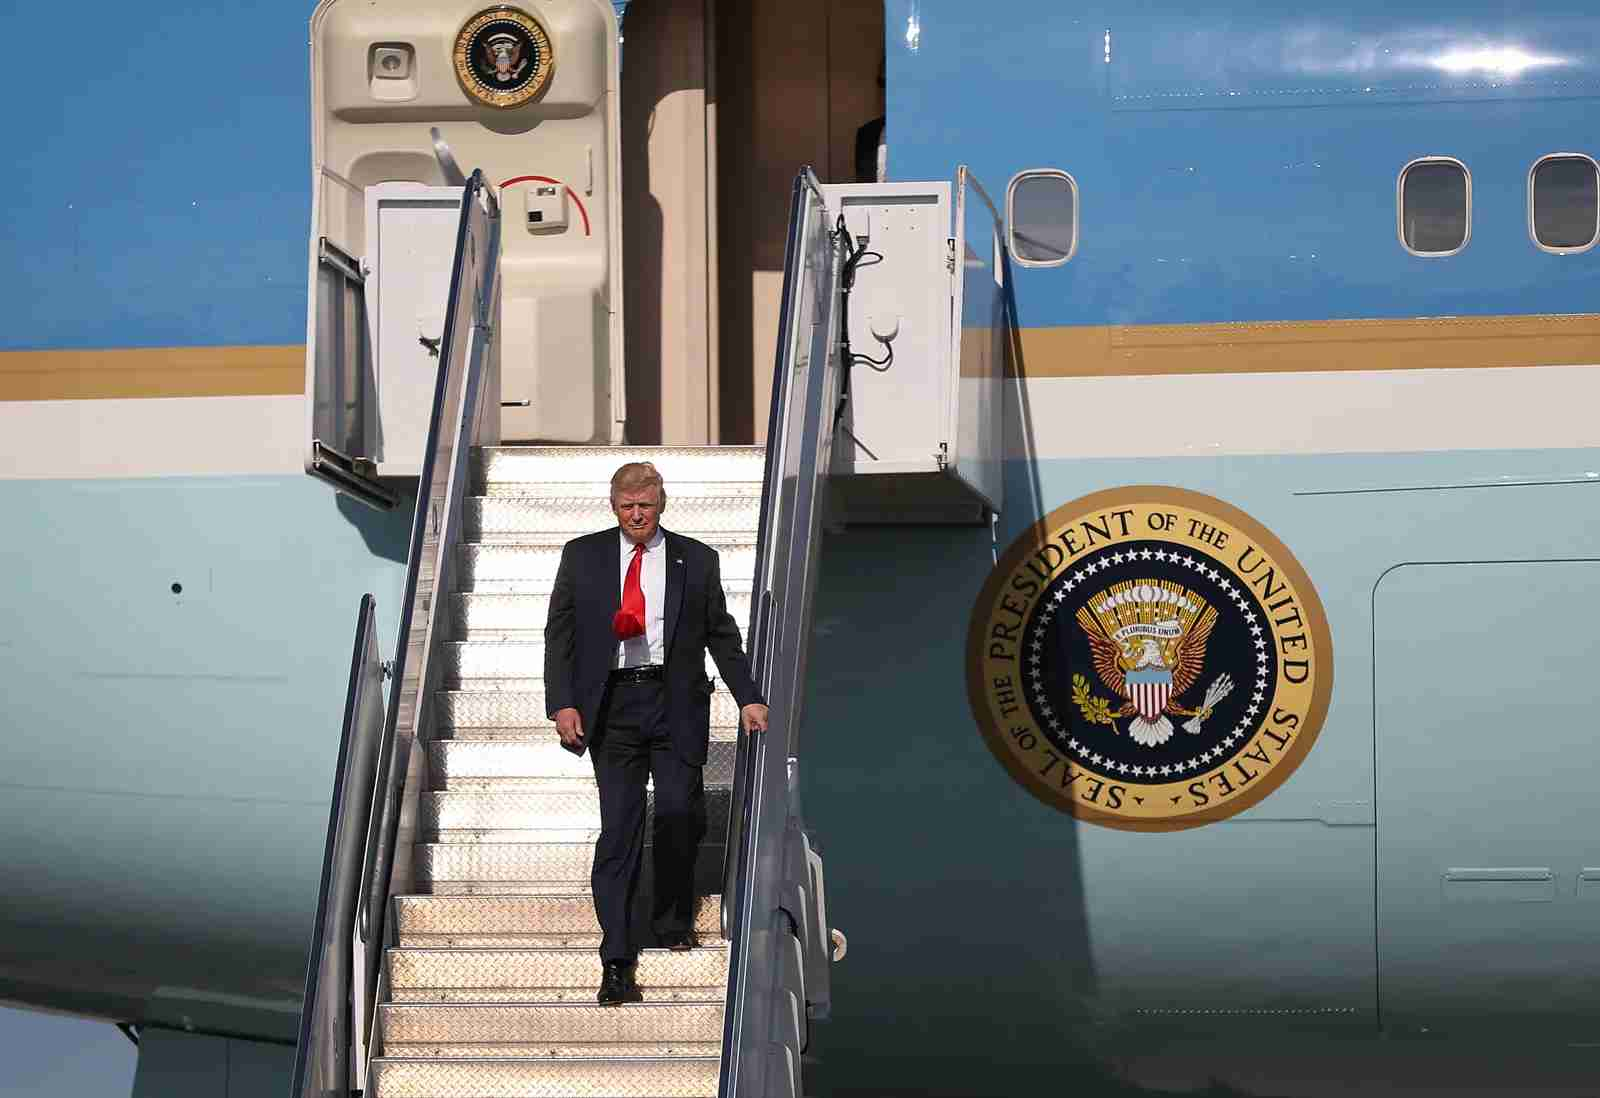 President Donald Trump arrives on Air Force One at the Palm Beach International Airport to spend the weekend at Mar-a-Lago resort in February 2017. (Photo by Joe Raedle/Getty Images)